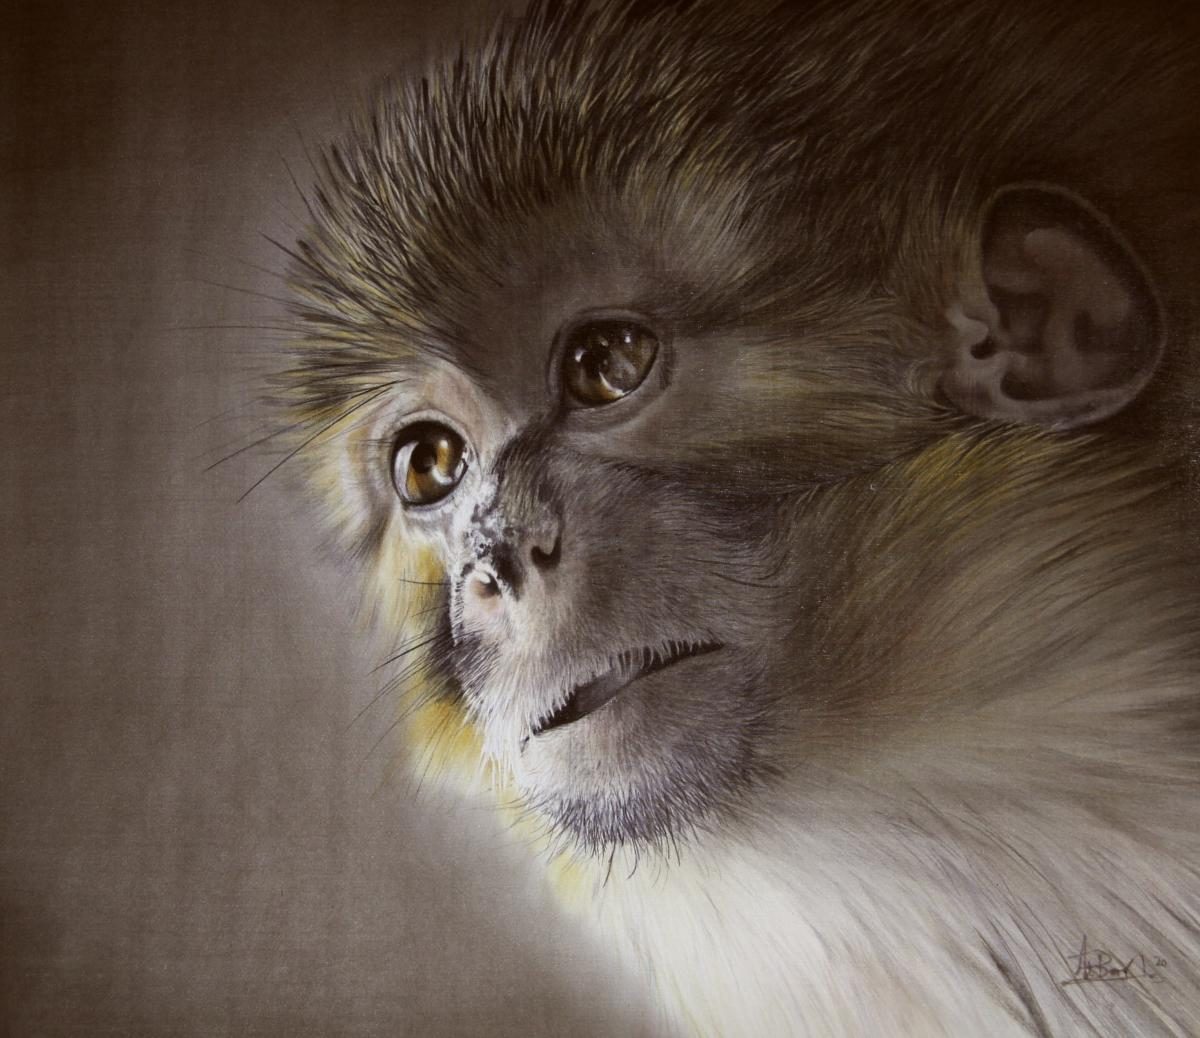 Monkey's Night | Wallhanging by Ute Bartels | Artists for Conservation 2020